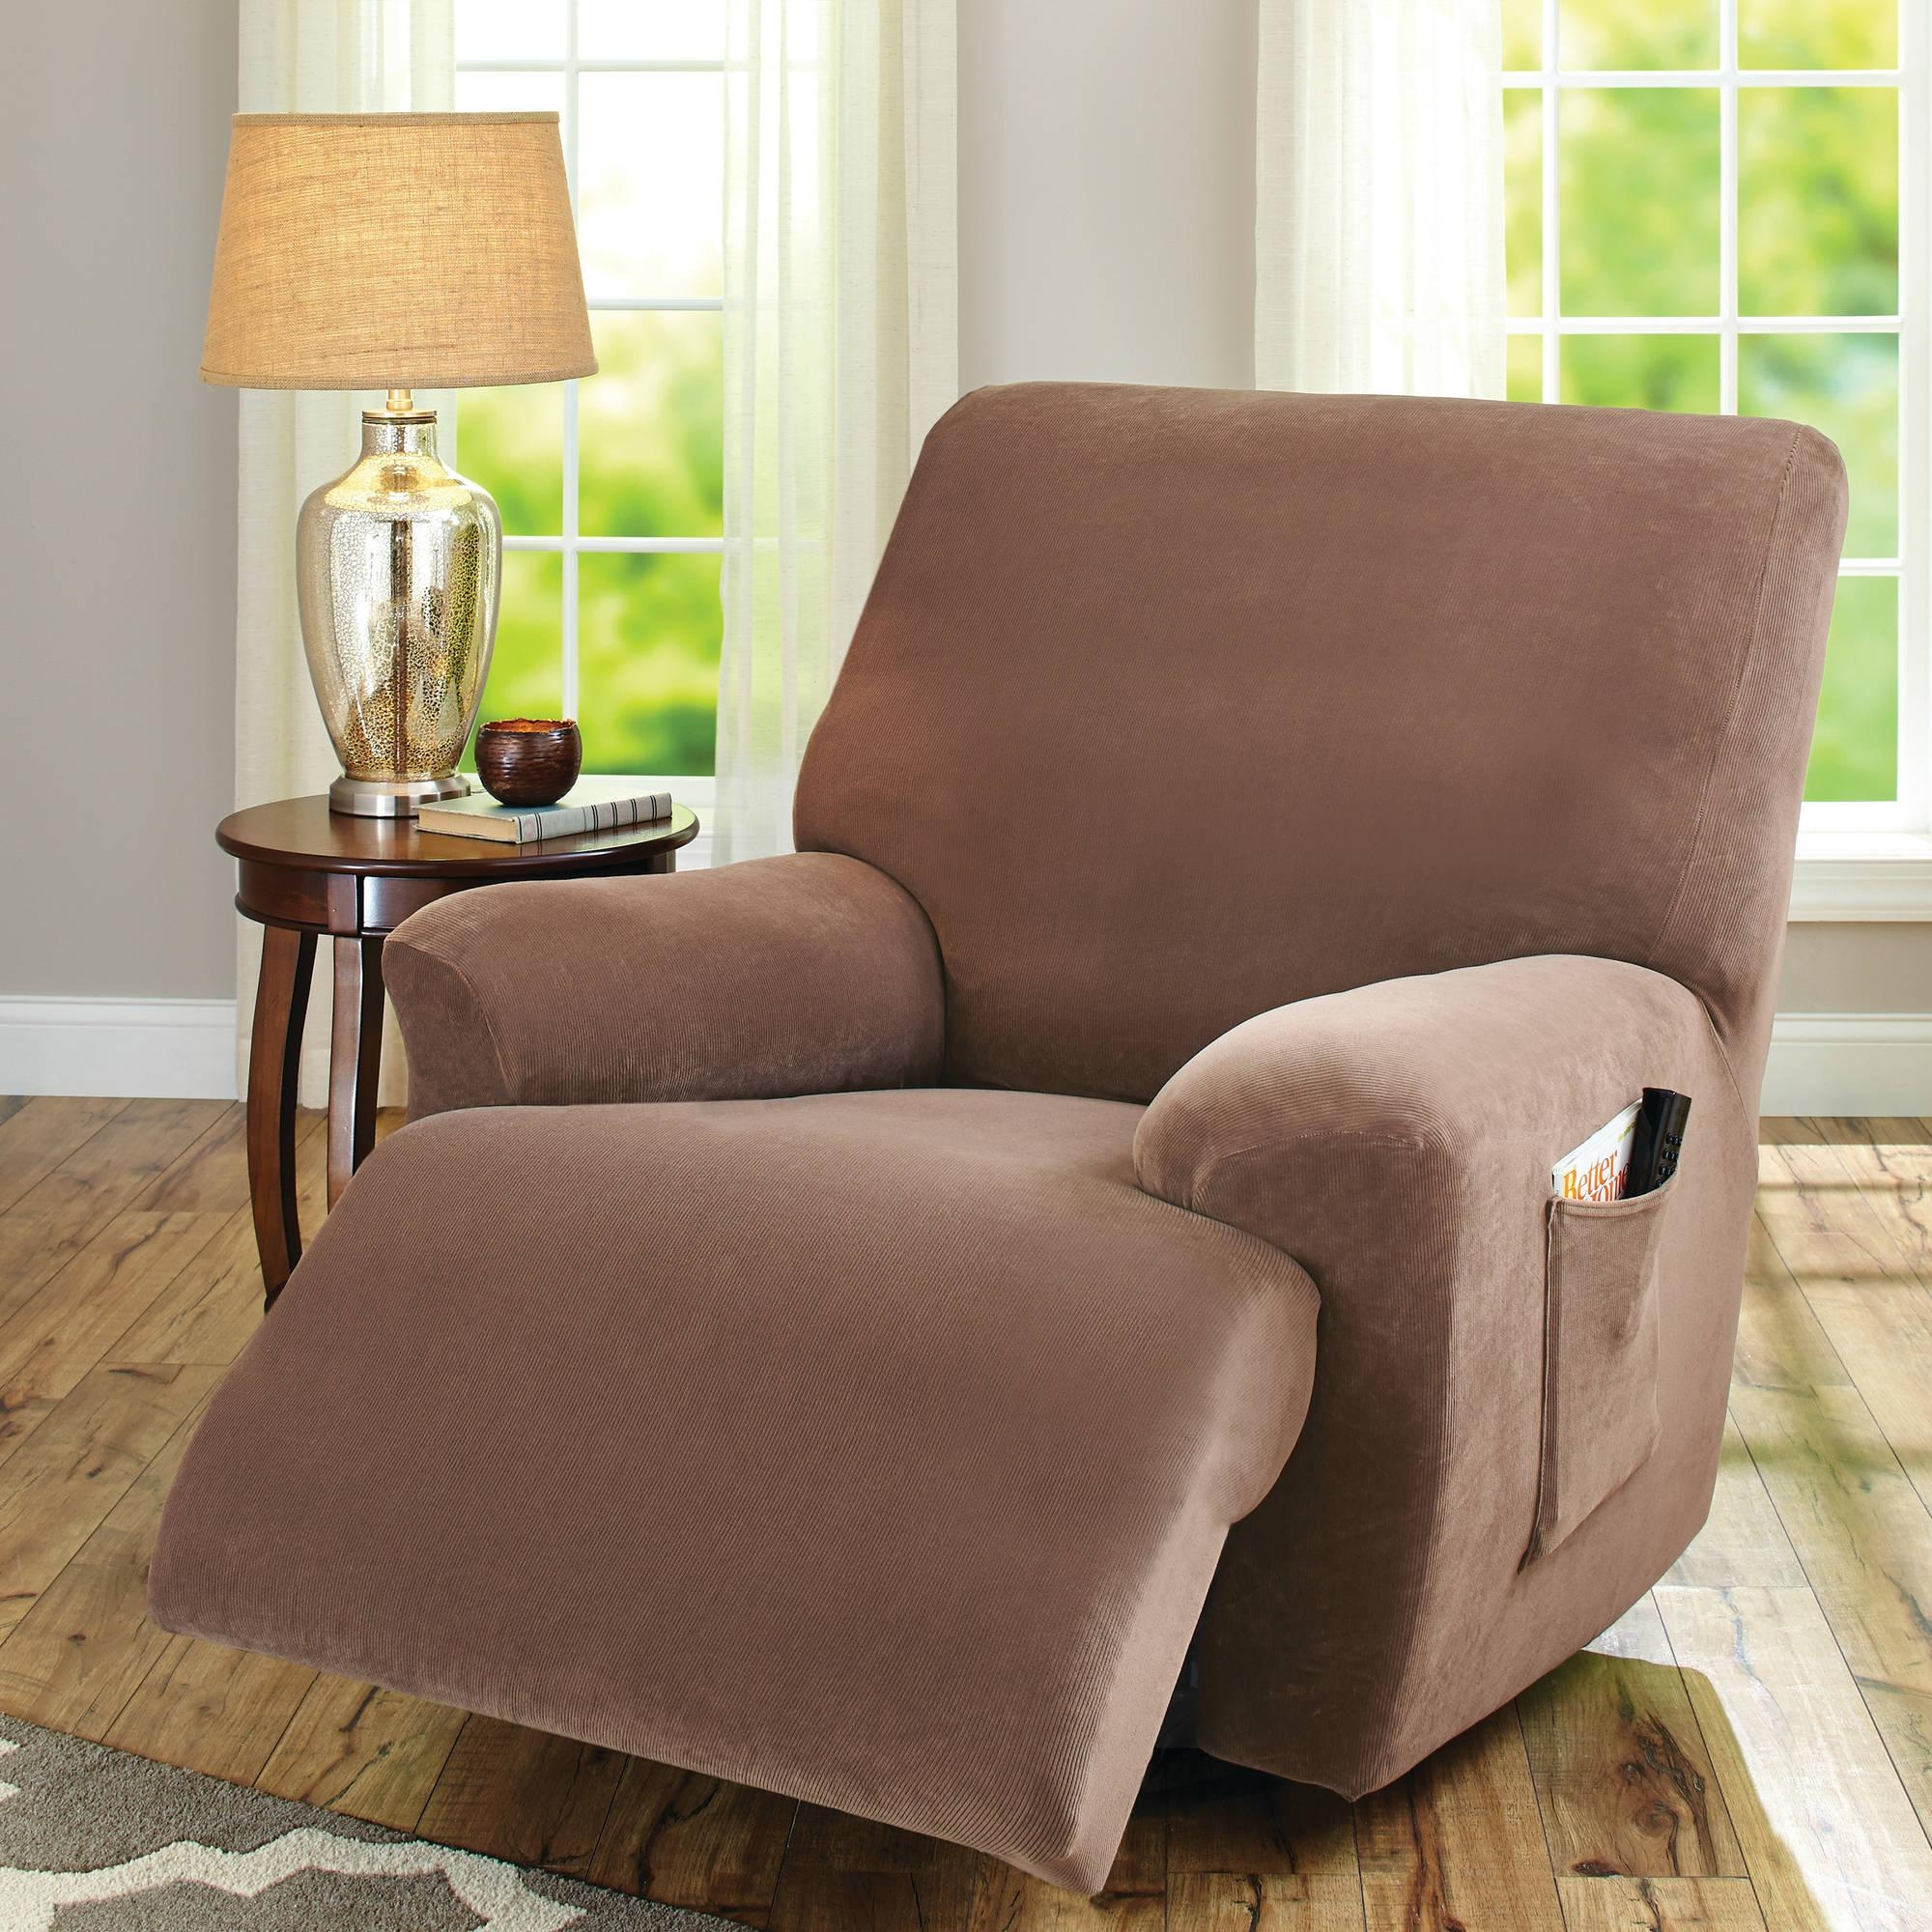 2 seater recliner sofa covers trade old for new one 20 ideas of stretch recliners